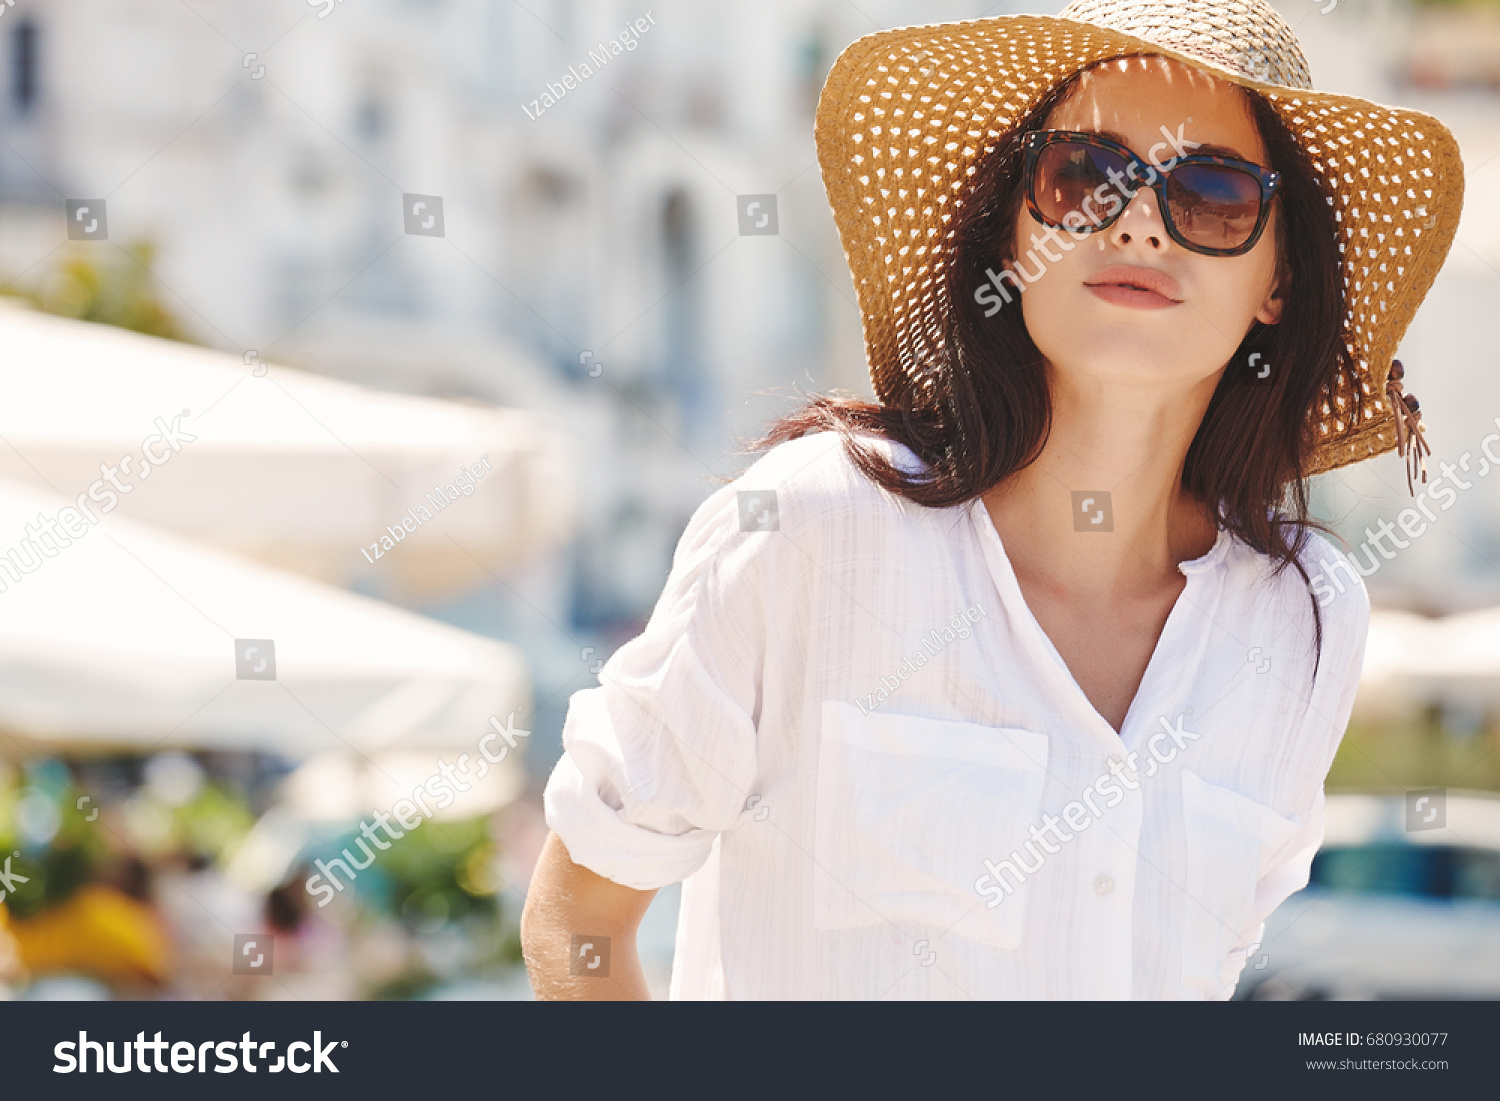 Young beautiful woman with sunglasses walking the streets of an Italian town #680930077